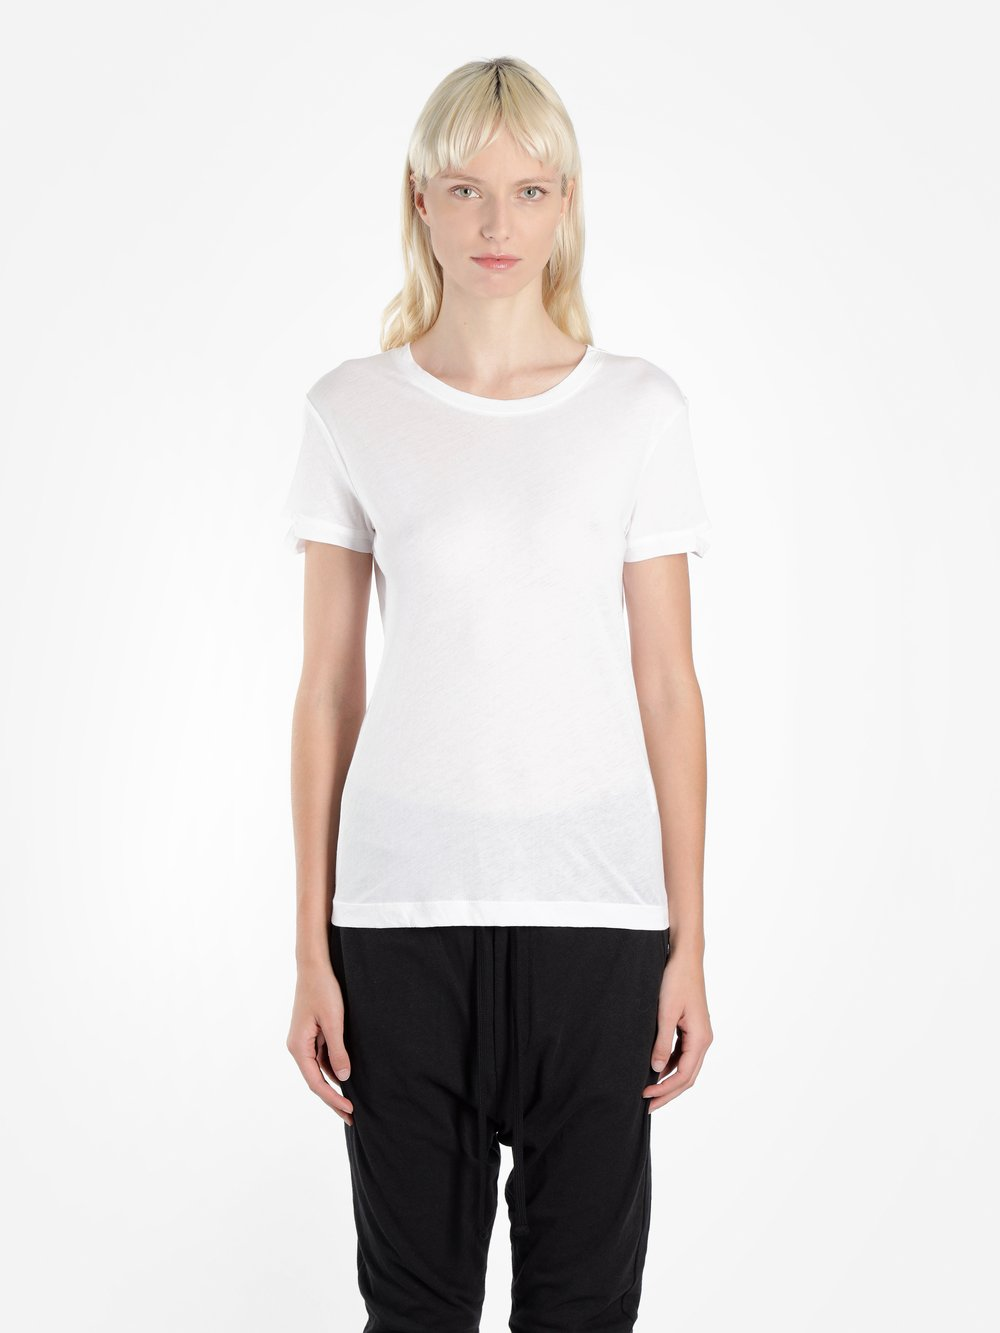 Thom Krom THOM KROM WOMEN'S WHITE BASIC T-SHIRT